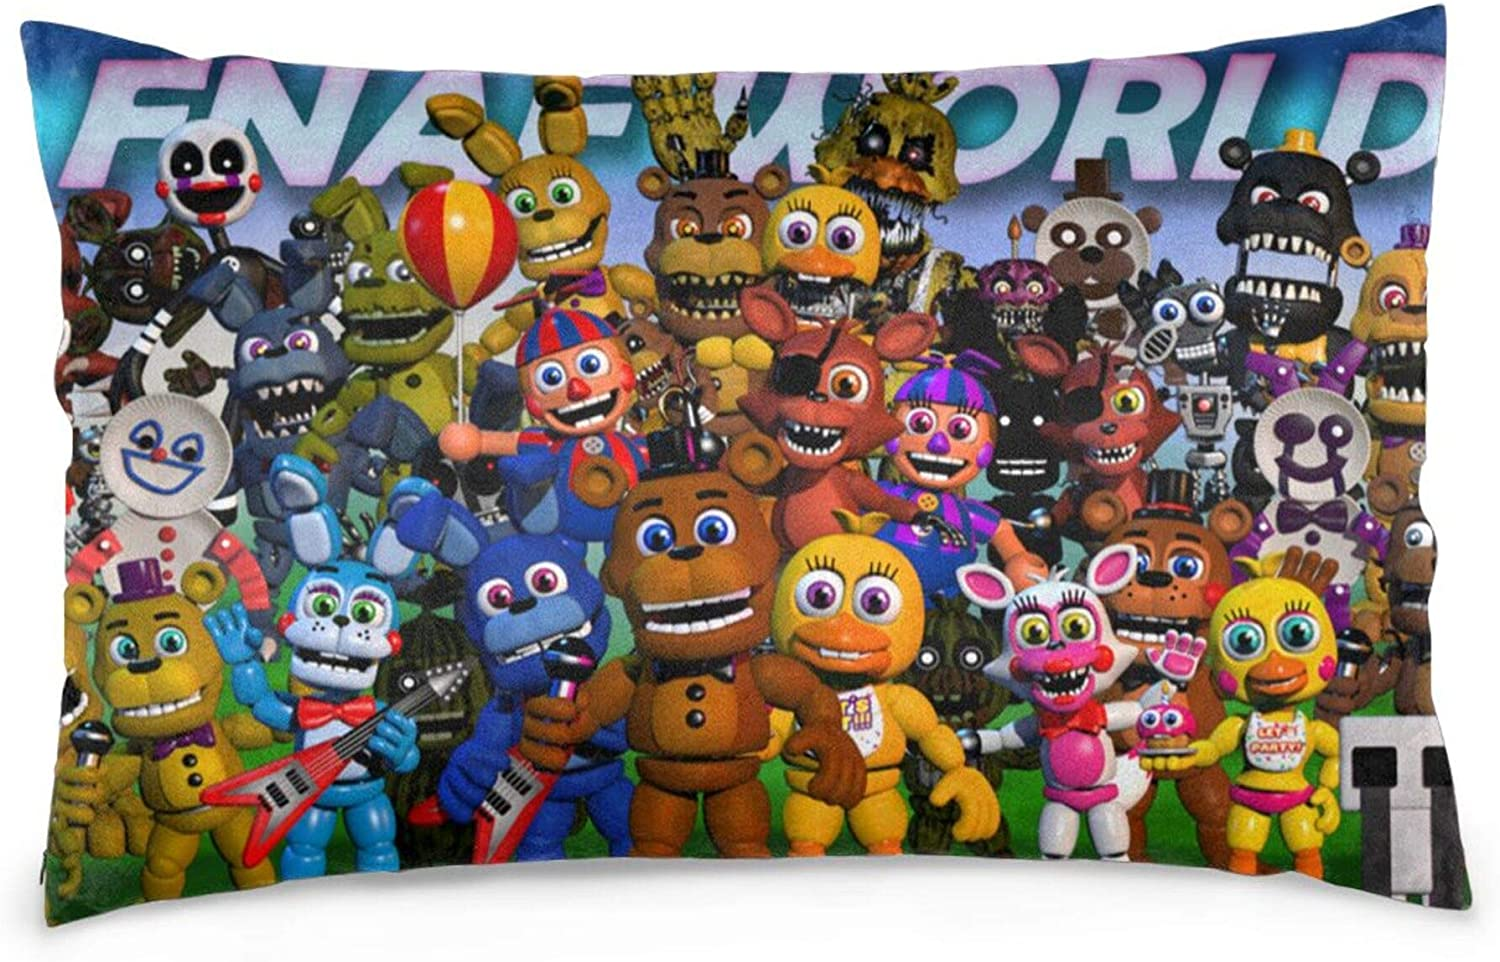 ZEHJMVO FNAF Five Nights at Freddy's Pillowcase Cushion Cover 20x30 Inch, Bear Decorative Bed Pillow Case Zippered Throw Pillow Cover Both Sides Printed Soft Twin Sides Pillowslip (FNAF World)